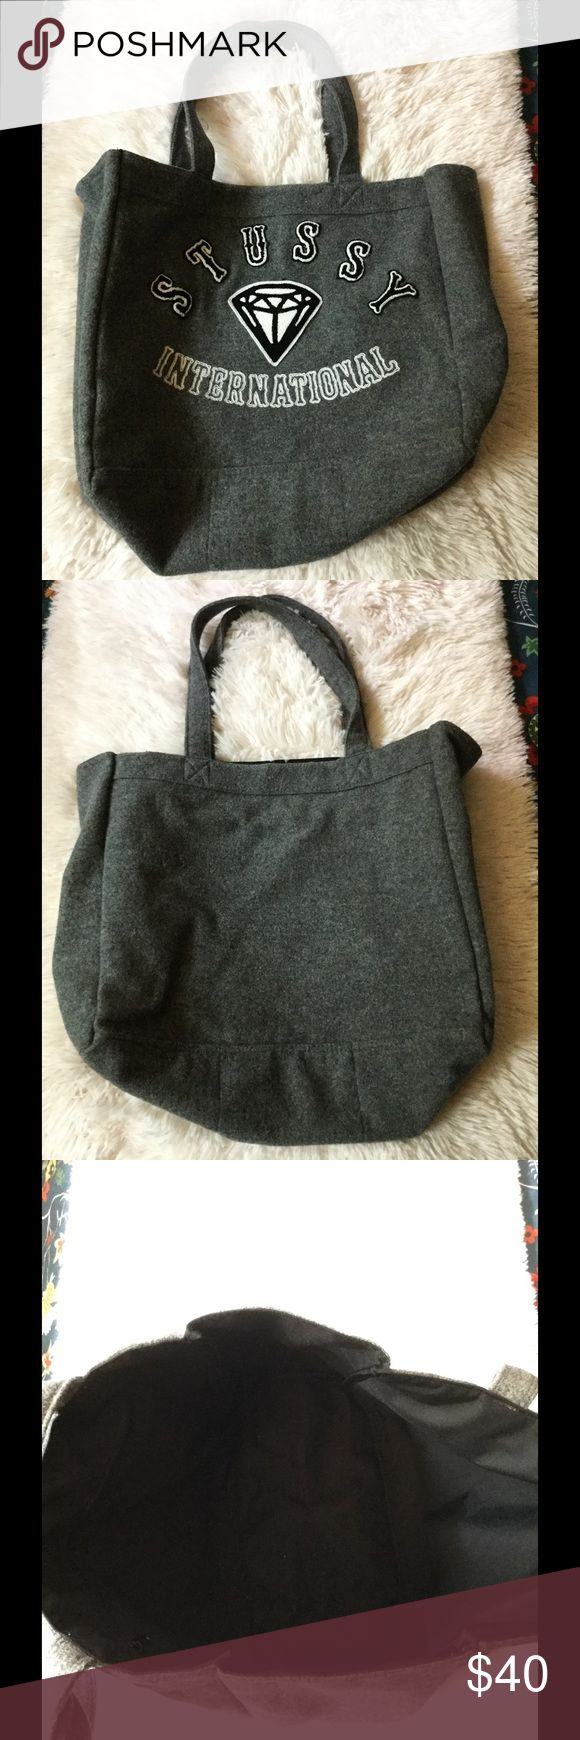 🌊Urban outfitters stussy large tote bag🌊 🌊Urban outfitters stussy large tote handbag in new condition 🌊 Urban Outfitters Bags Totes